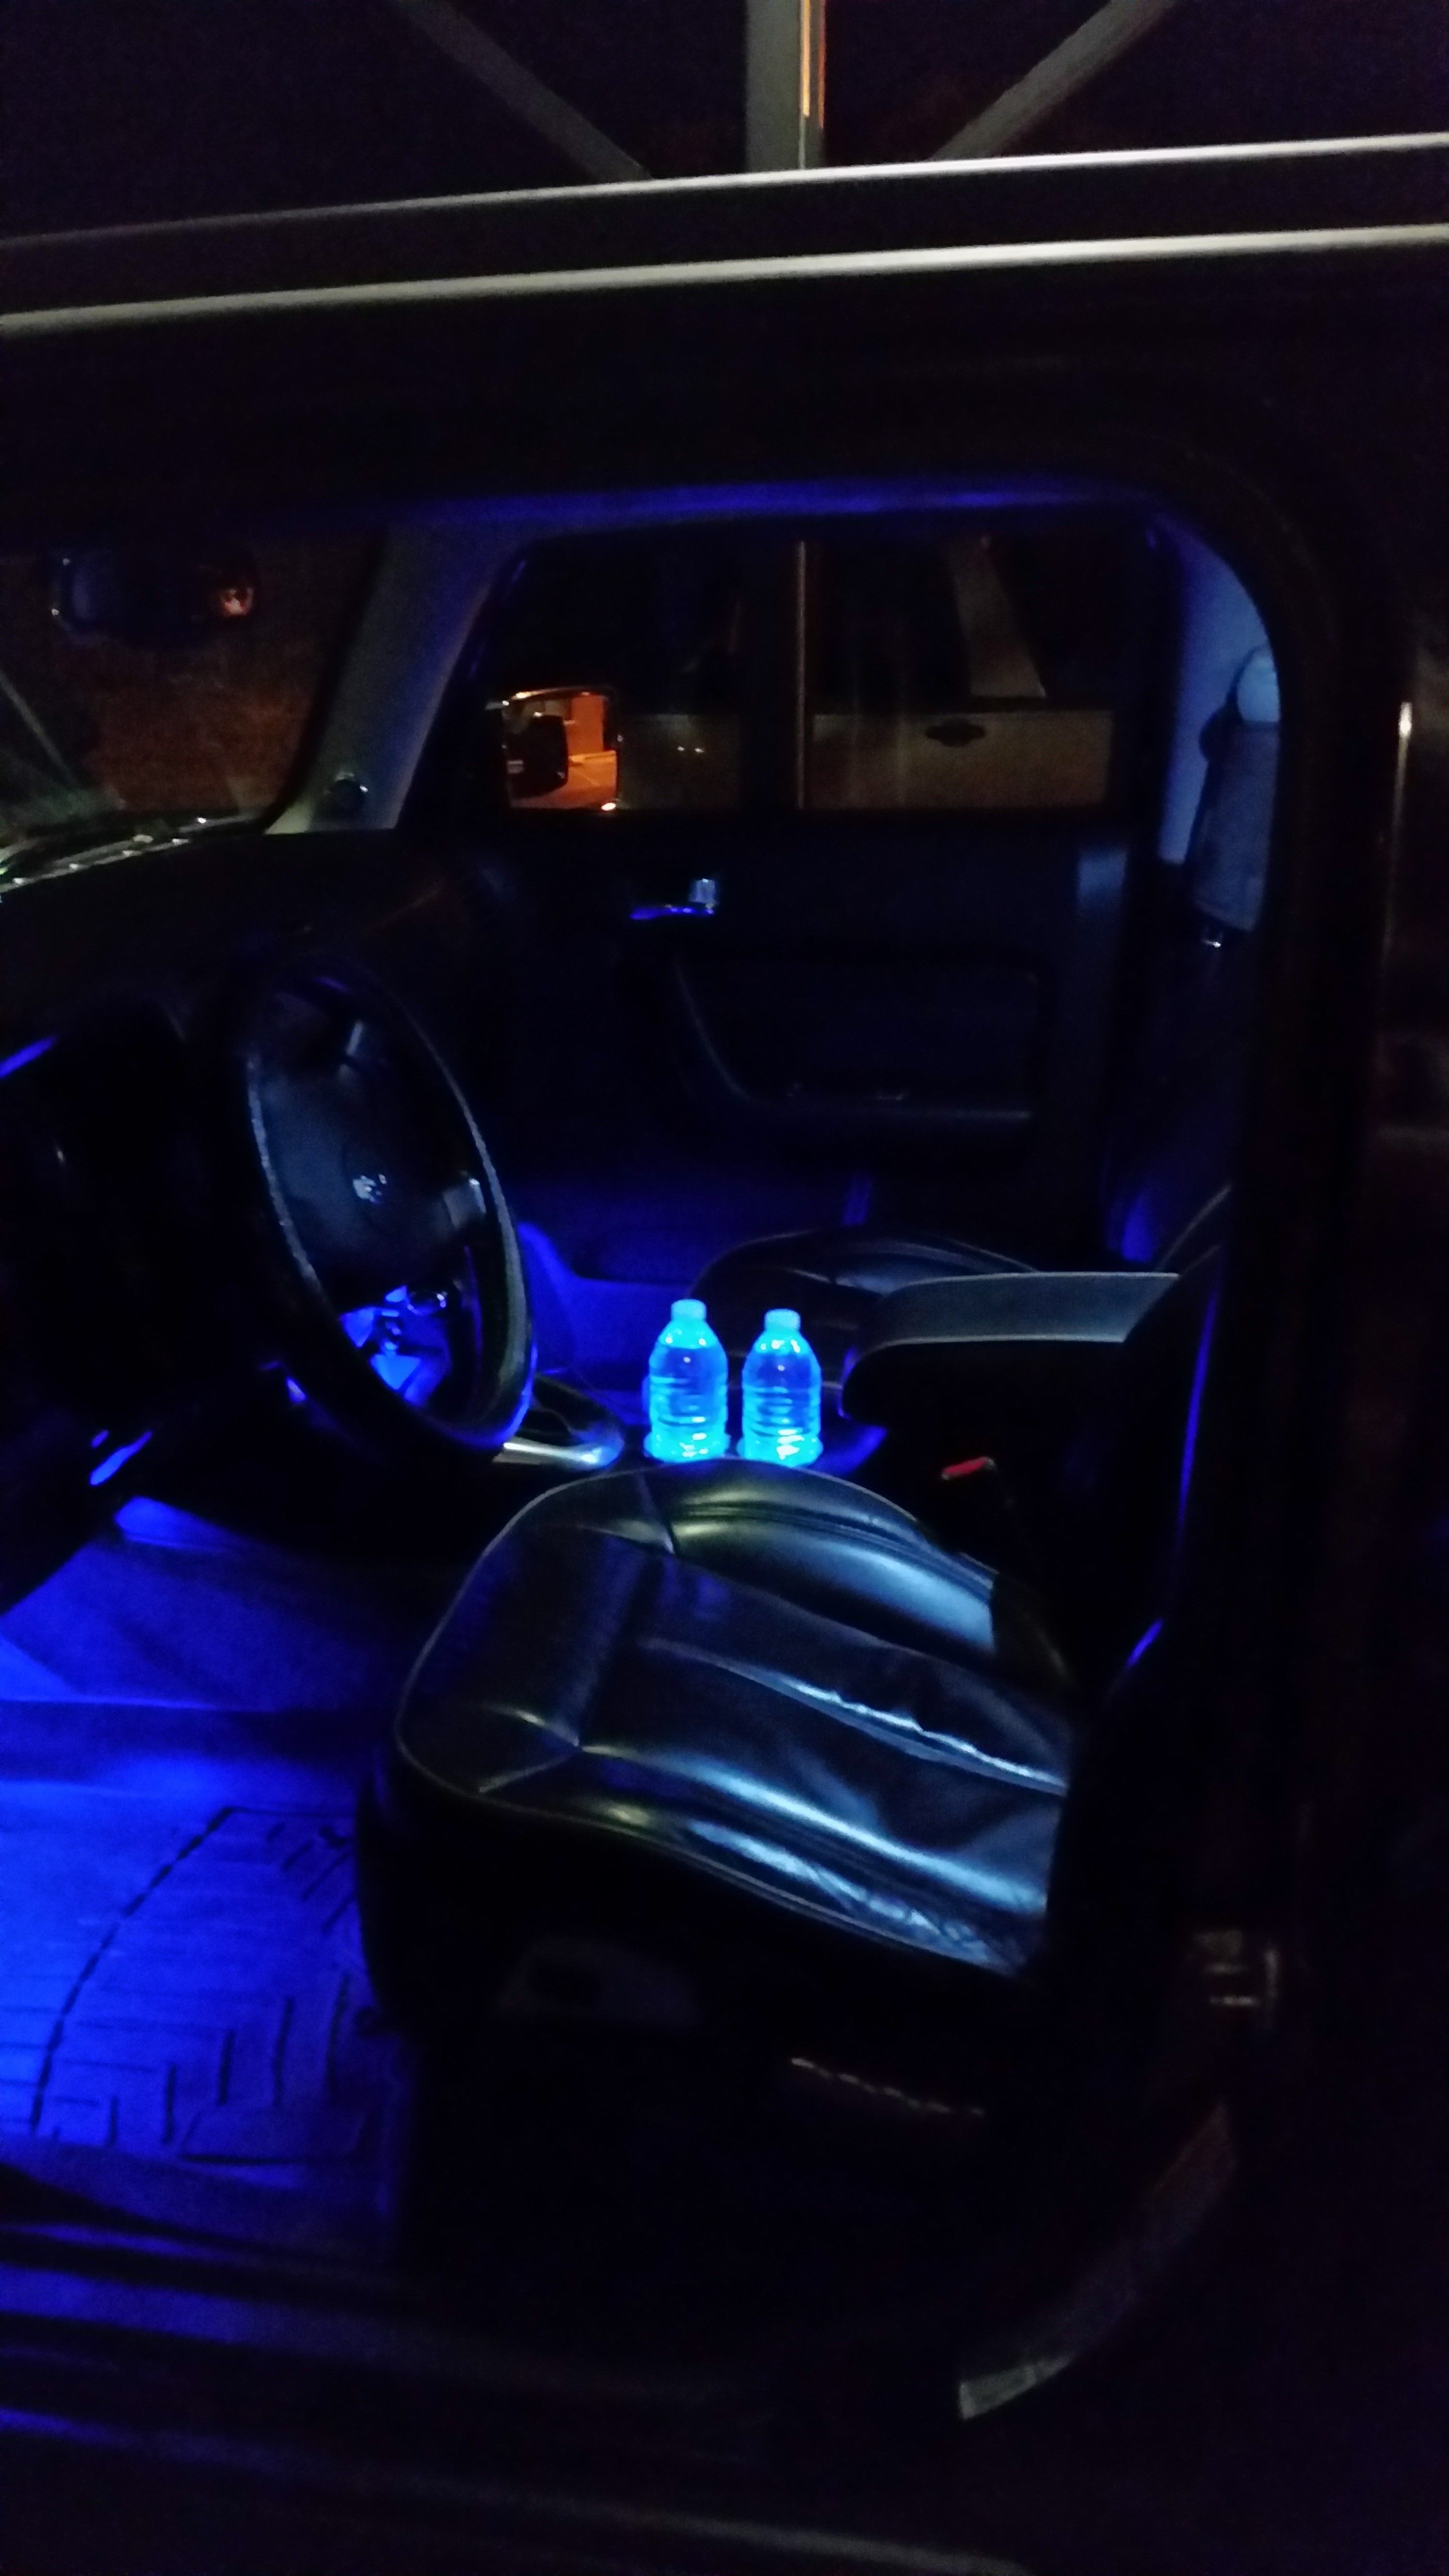 The Blue Led And Ledglow Interior Lighting I Installed We